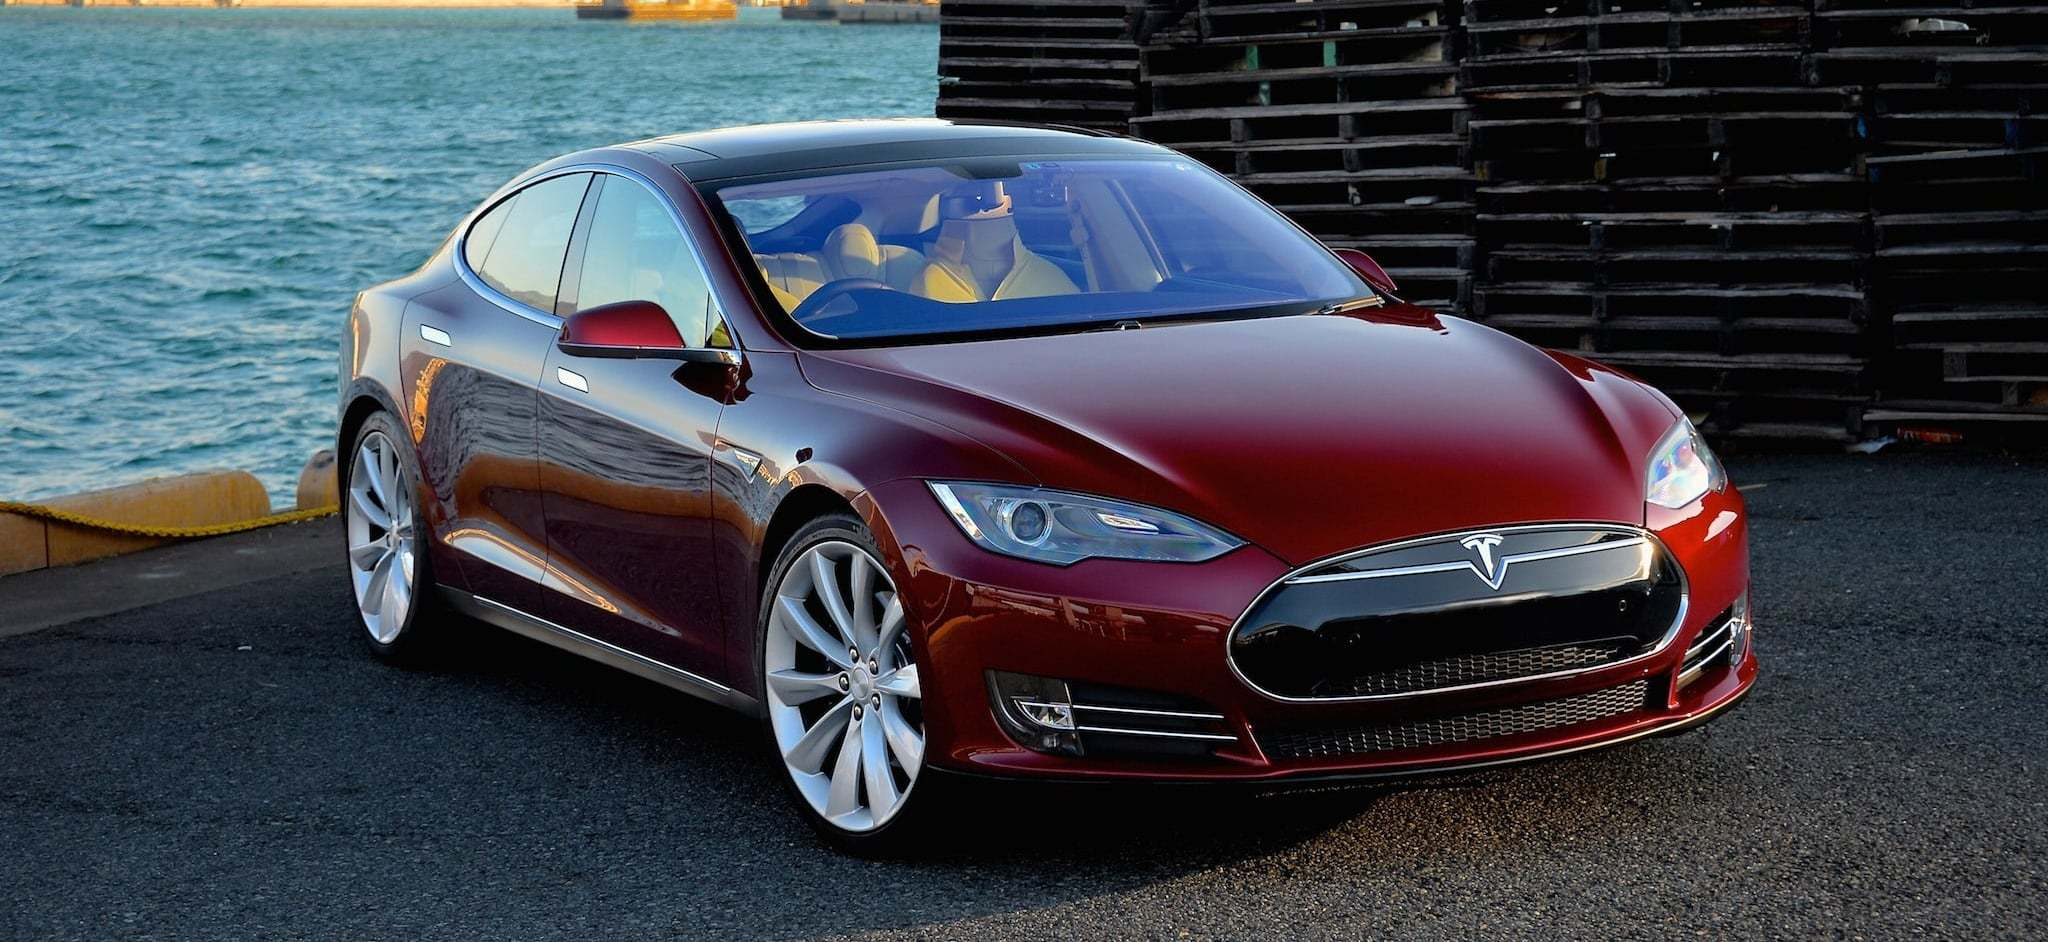 Will Tesla Survive Elon Musk's 'Departure'?